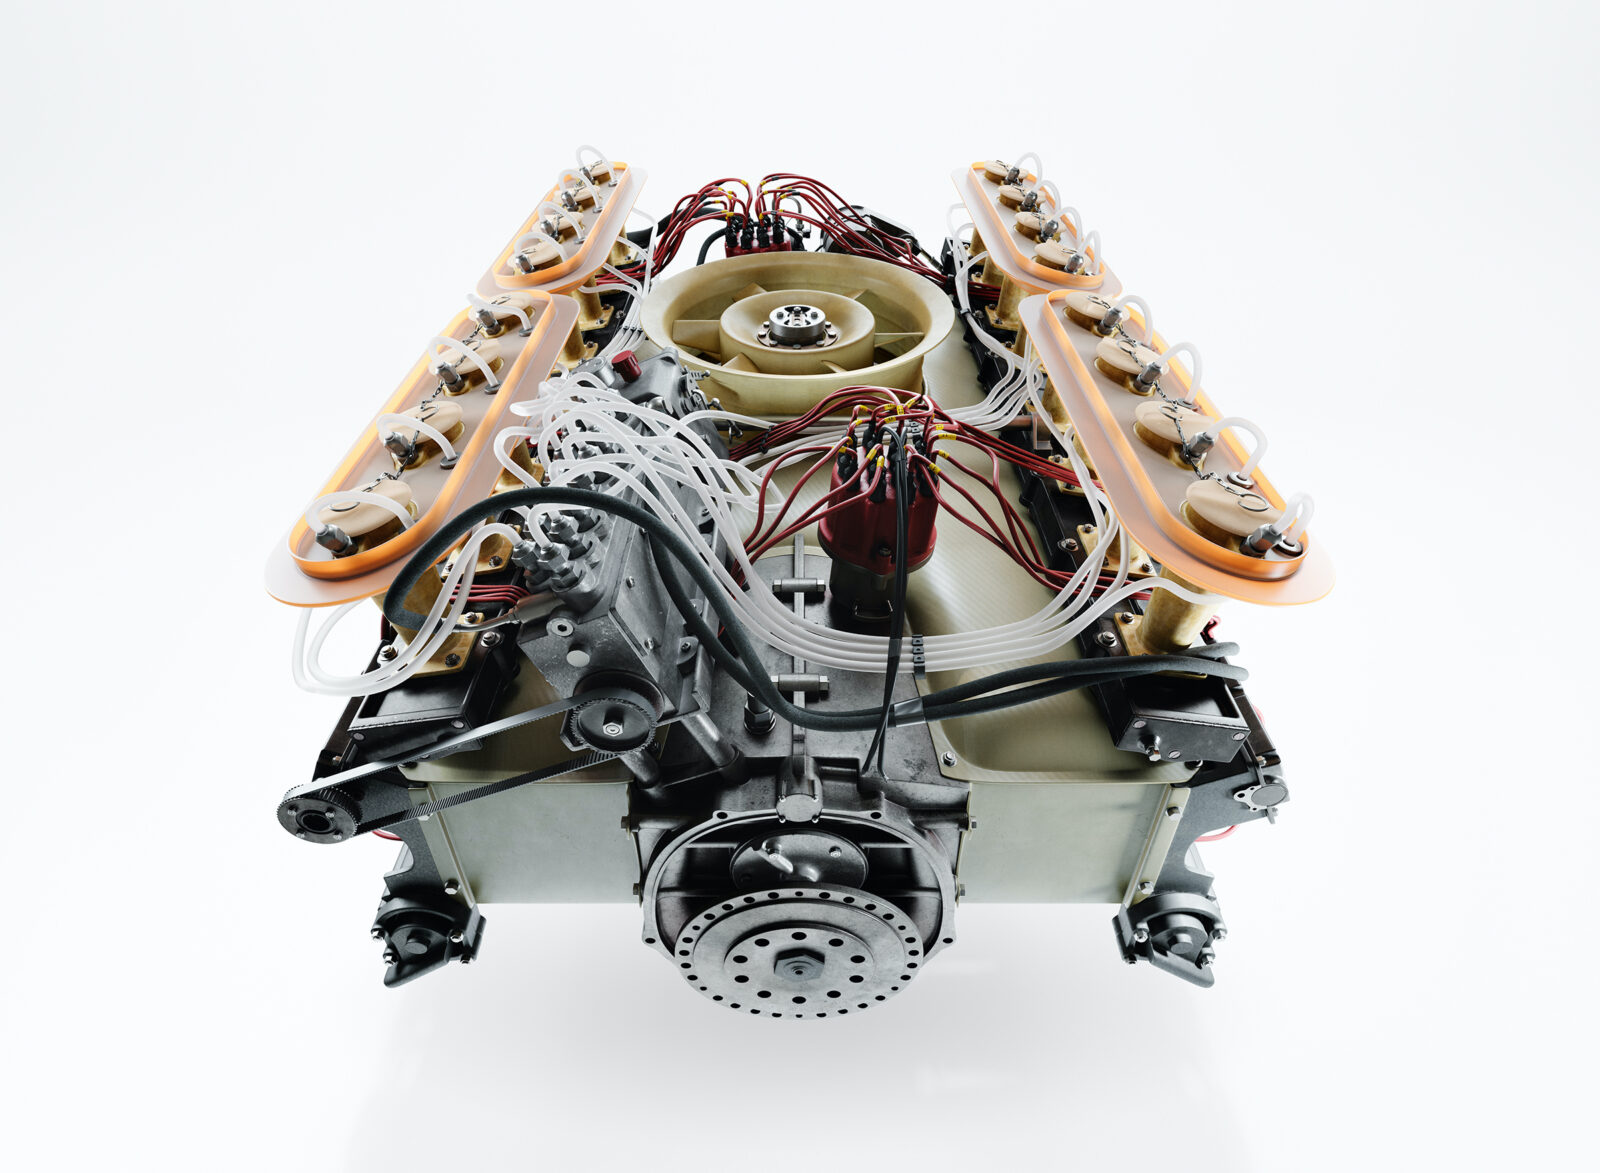 Porsche 917 Flat-16 Engine Prototype Back